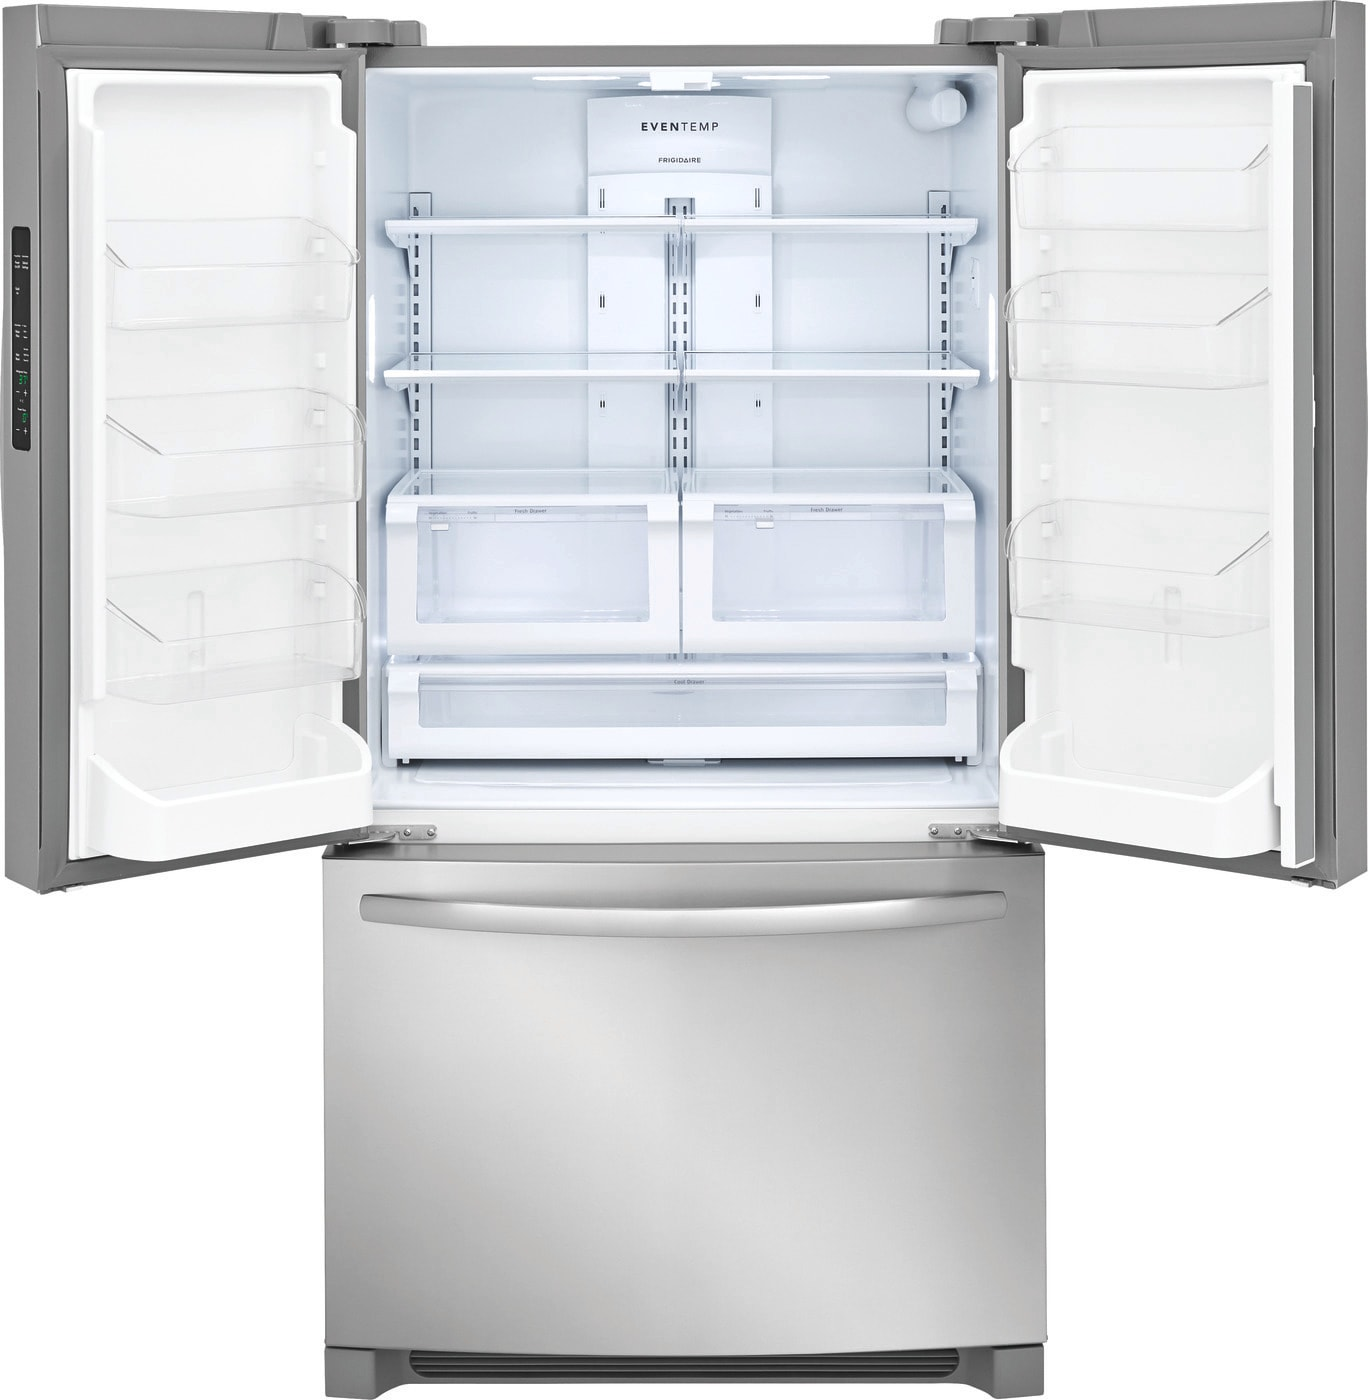 27.6 Cu. Ft. French Door Refrigerator Stainless Steel FFHN2750TS